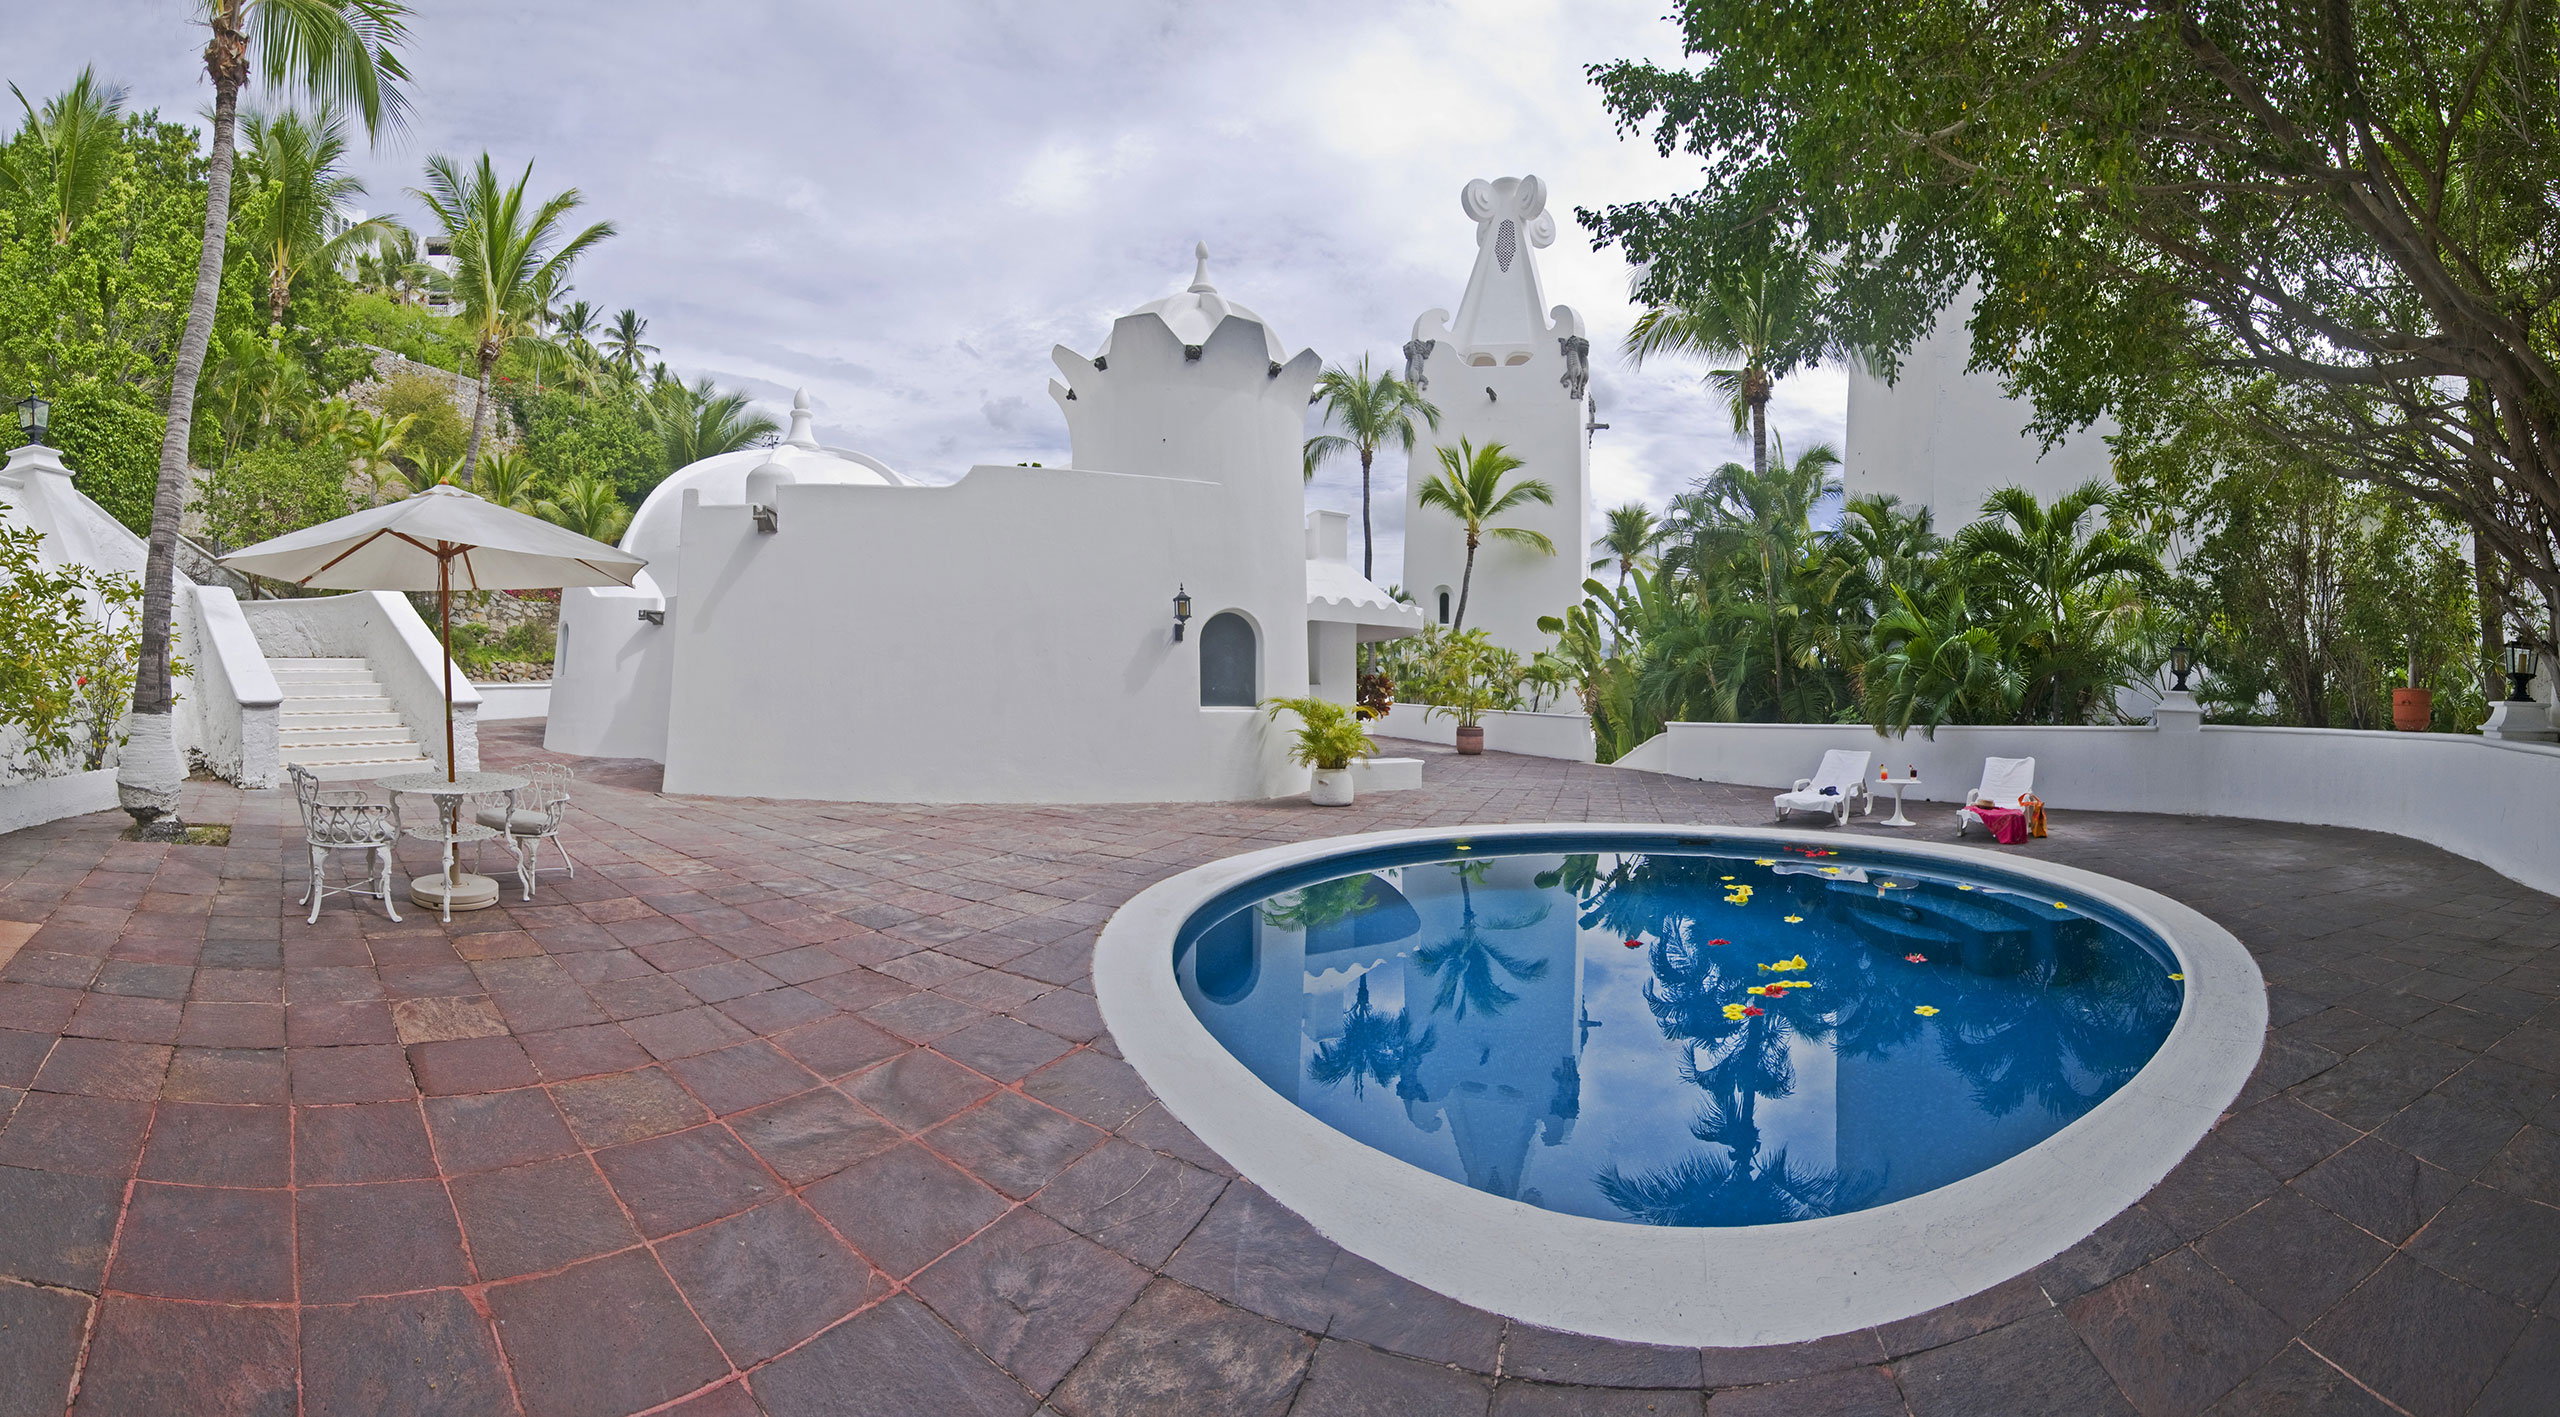 Presidential suite pool at Hotel Las Hadas by Brisas